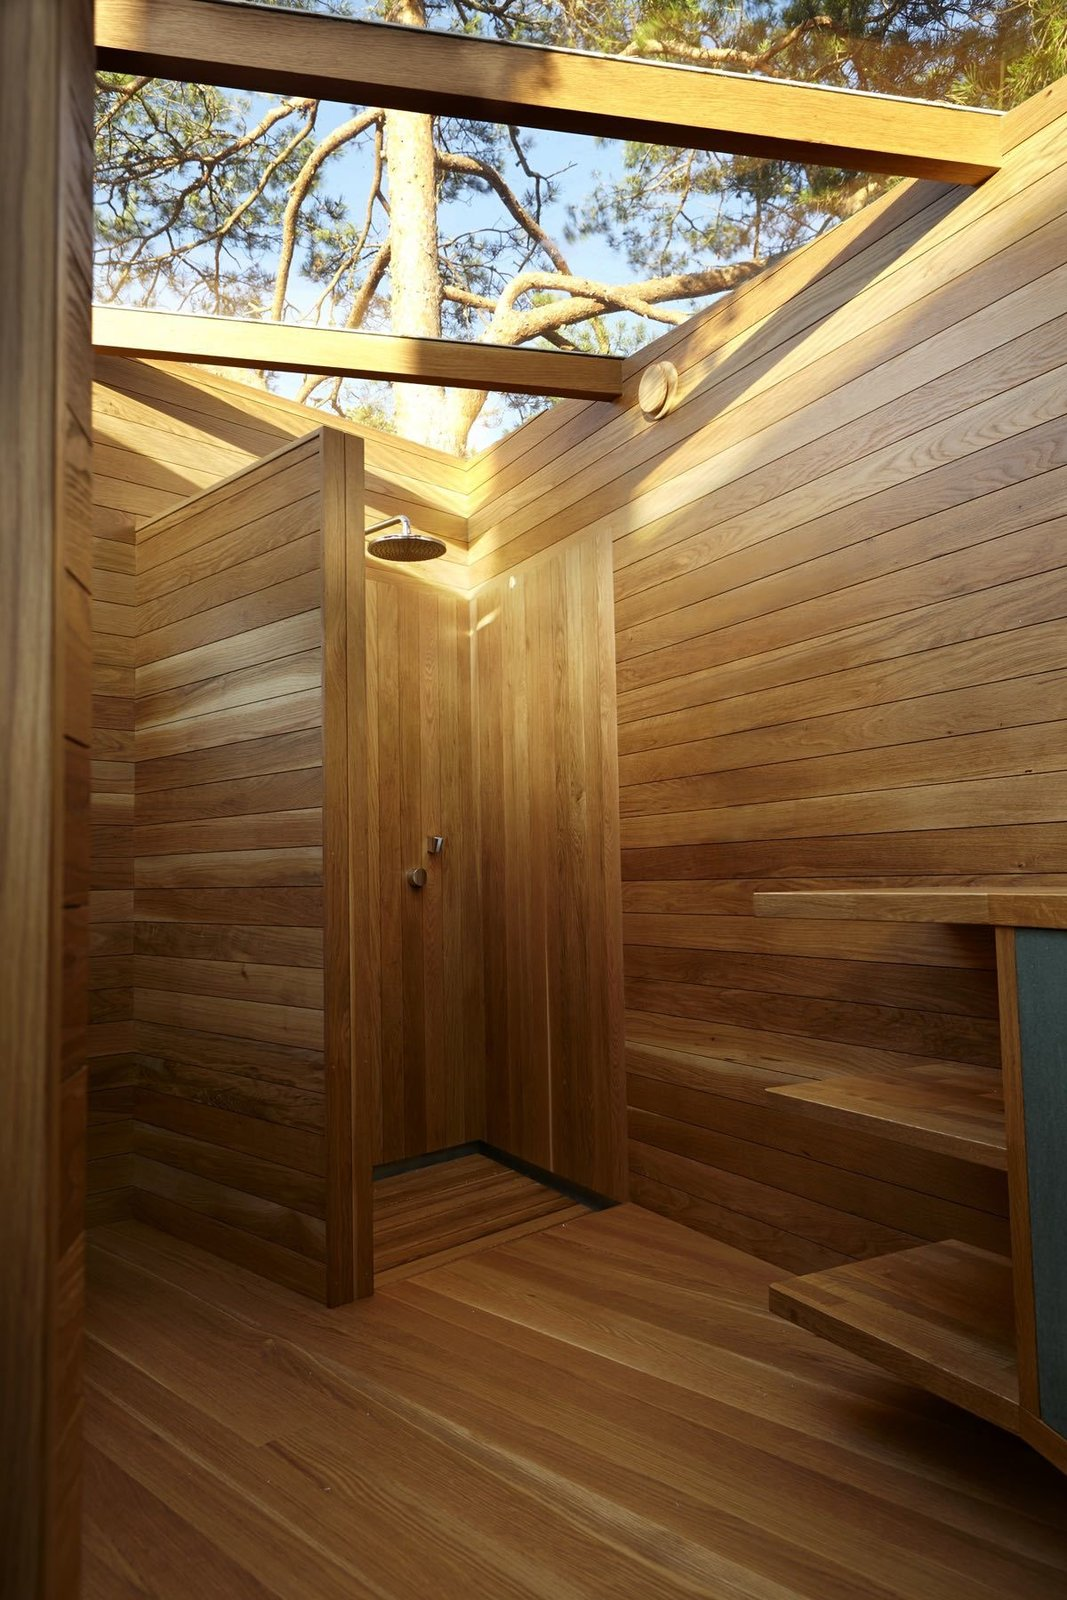 Outdoor, Shower Pools, Tubs, Shower, and Wood Fences, Wall  Photo 5 of 10 in A Tiny Bathhouse on the Norwegian Island of Hankø Made With Sustainable Softwood